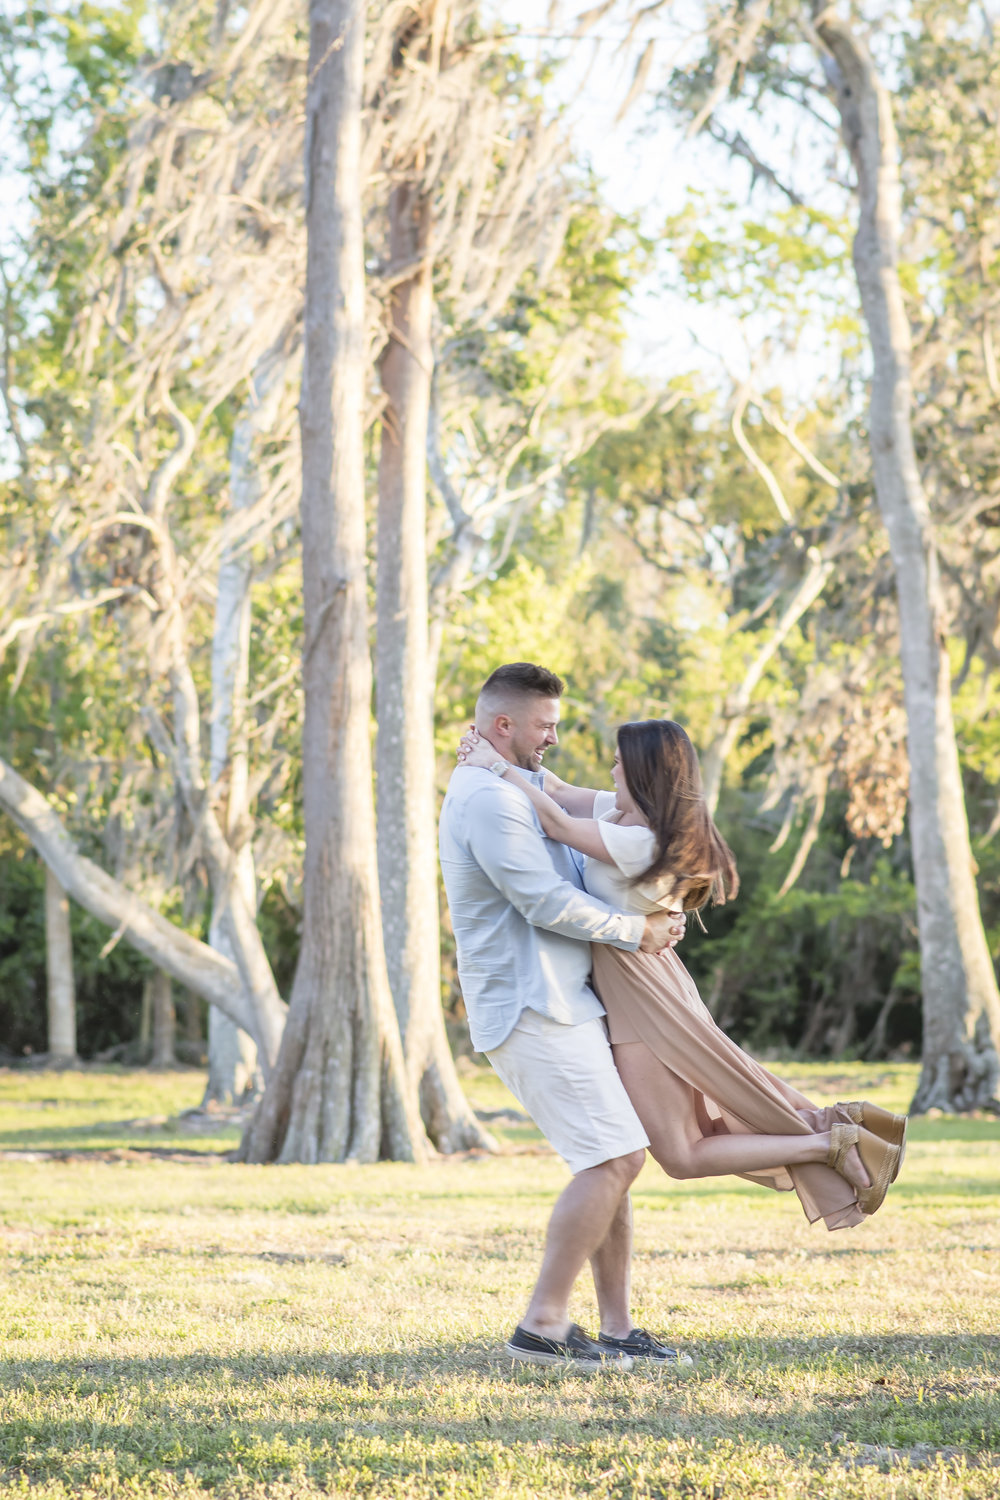 cypress-grove-park-engagement-session-orlando-photographer-yanitza-ninett-17.jpg